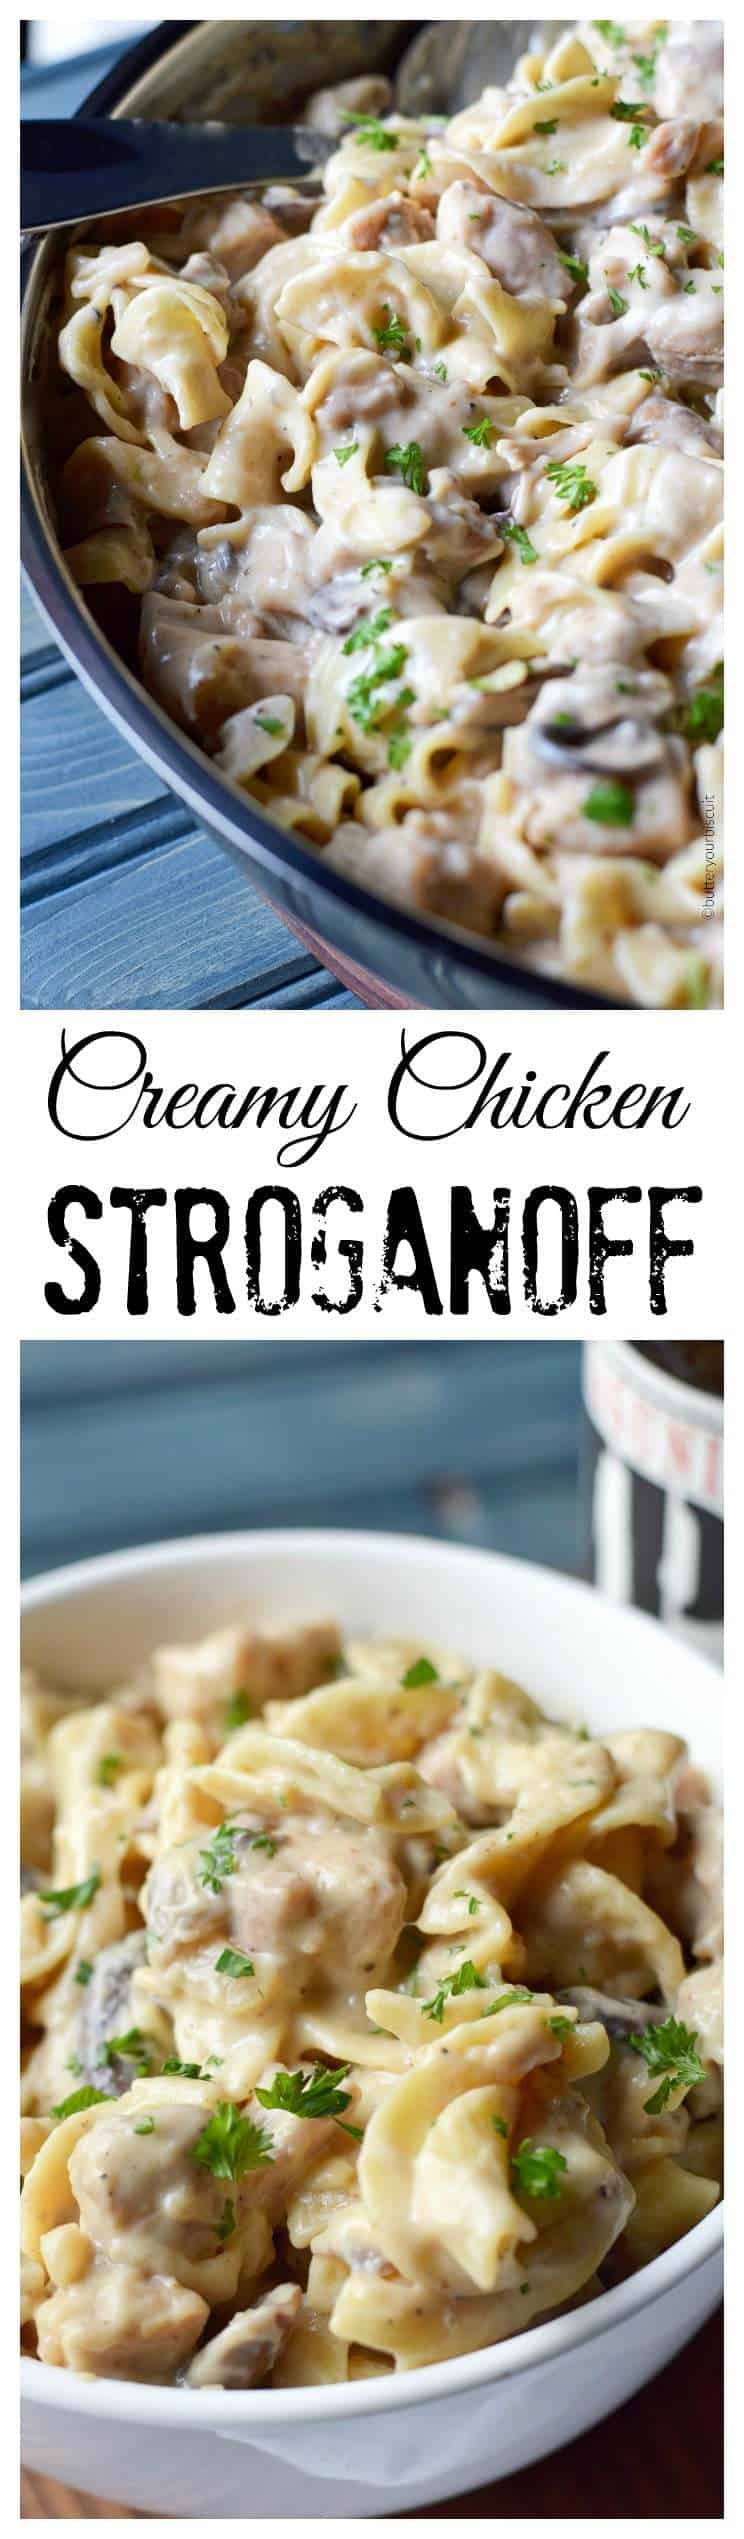 creamy-chicken-stroganoff-lp-2